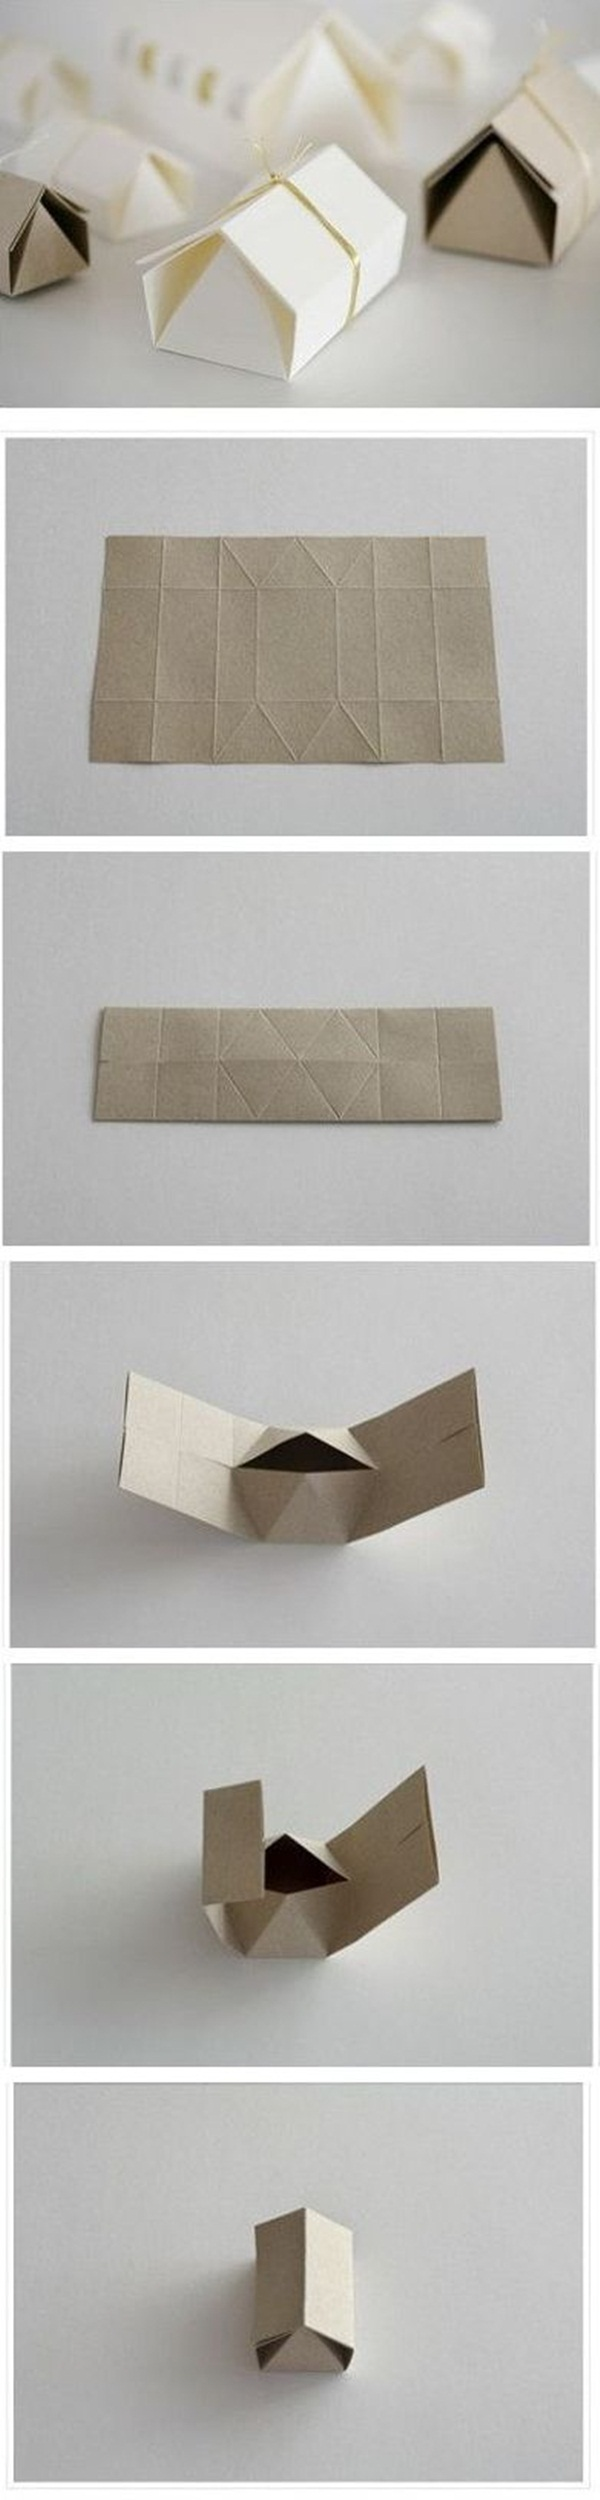 easy-origami-for-kids21